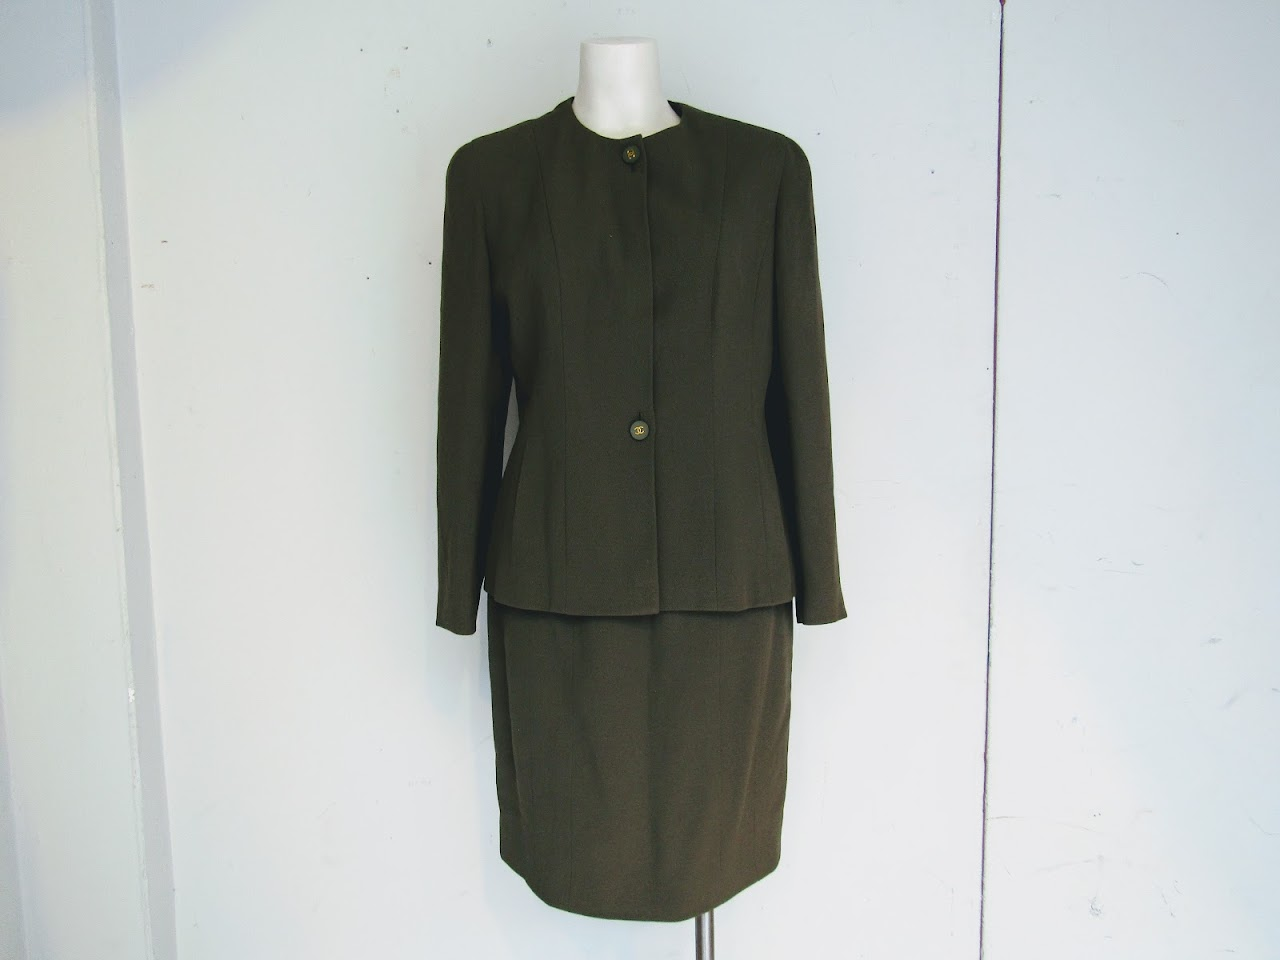 Chanel Boutique Olive Green Skirt Suit